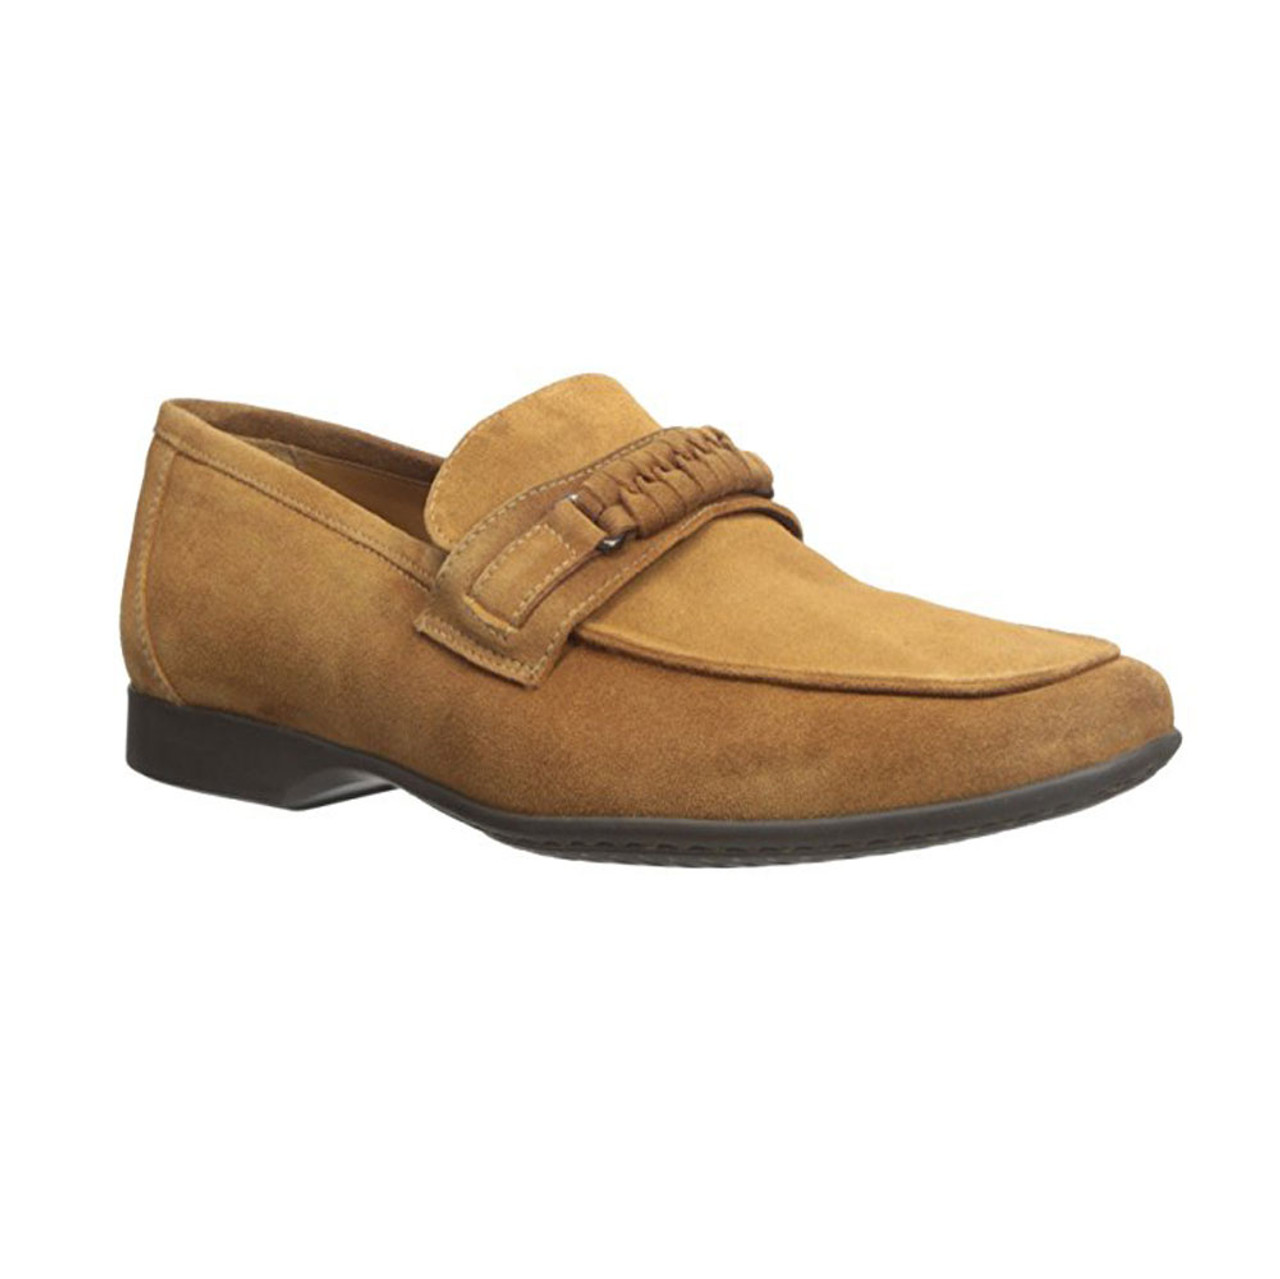 5eed78ed78f Bruno Magli Men s Lorenzo Loafer Whiskey - Shop now   Shoolu.com